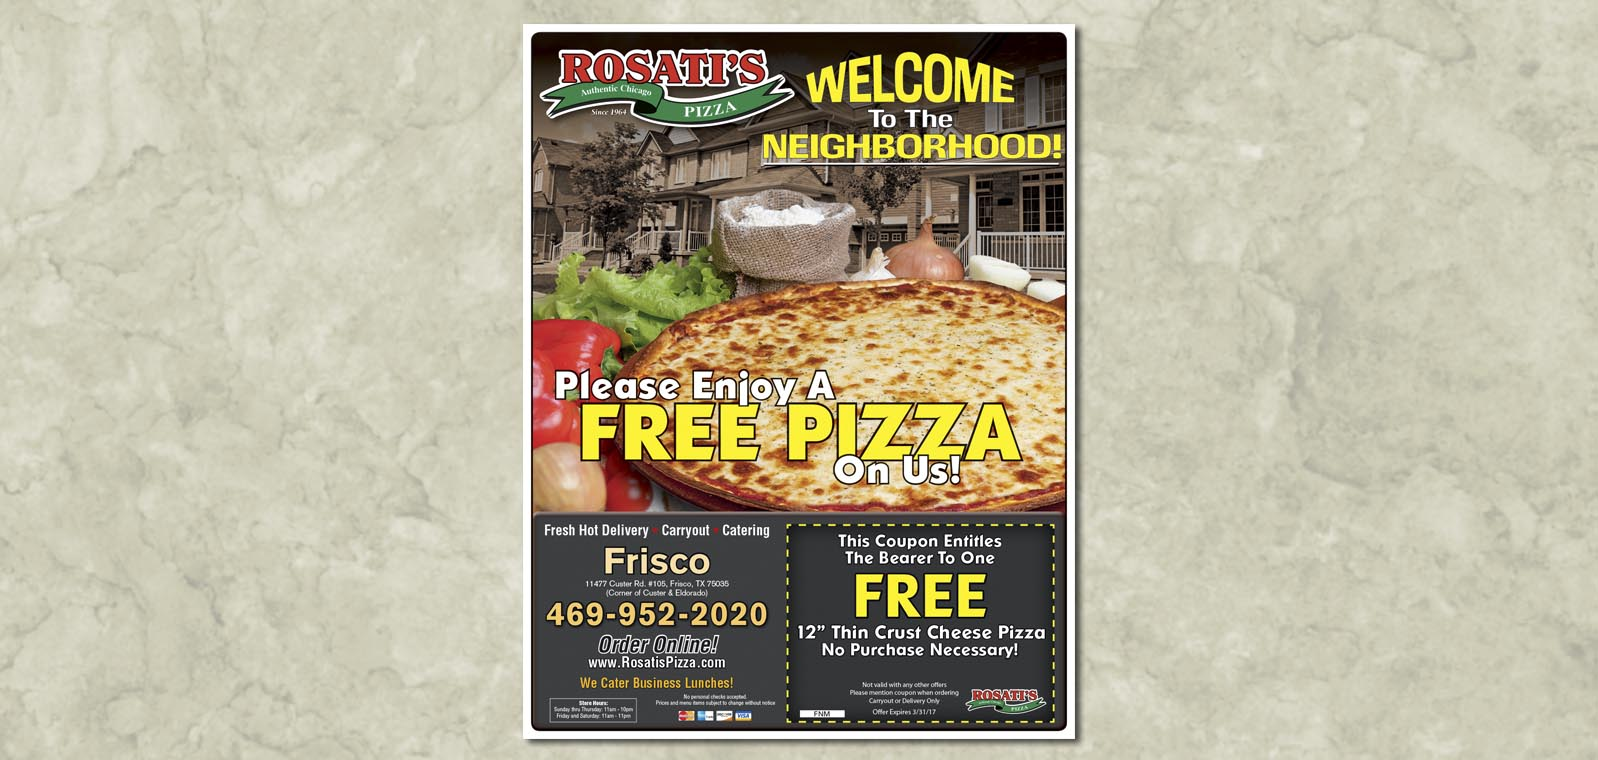 Flyer Design by Roselle Graphic Designer Controlled Color, Inc.